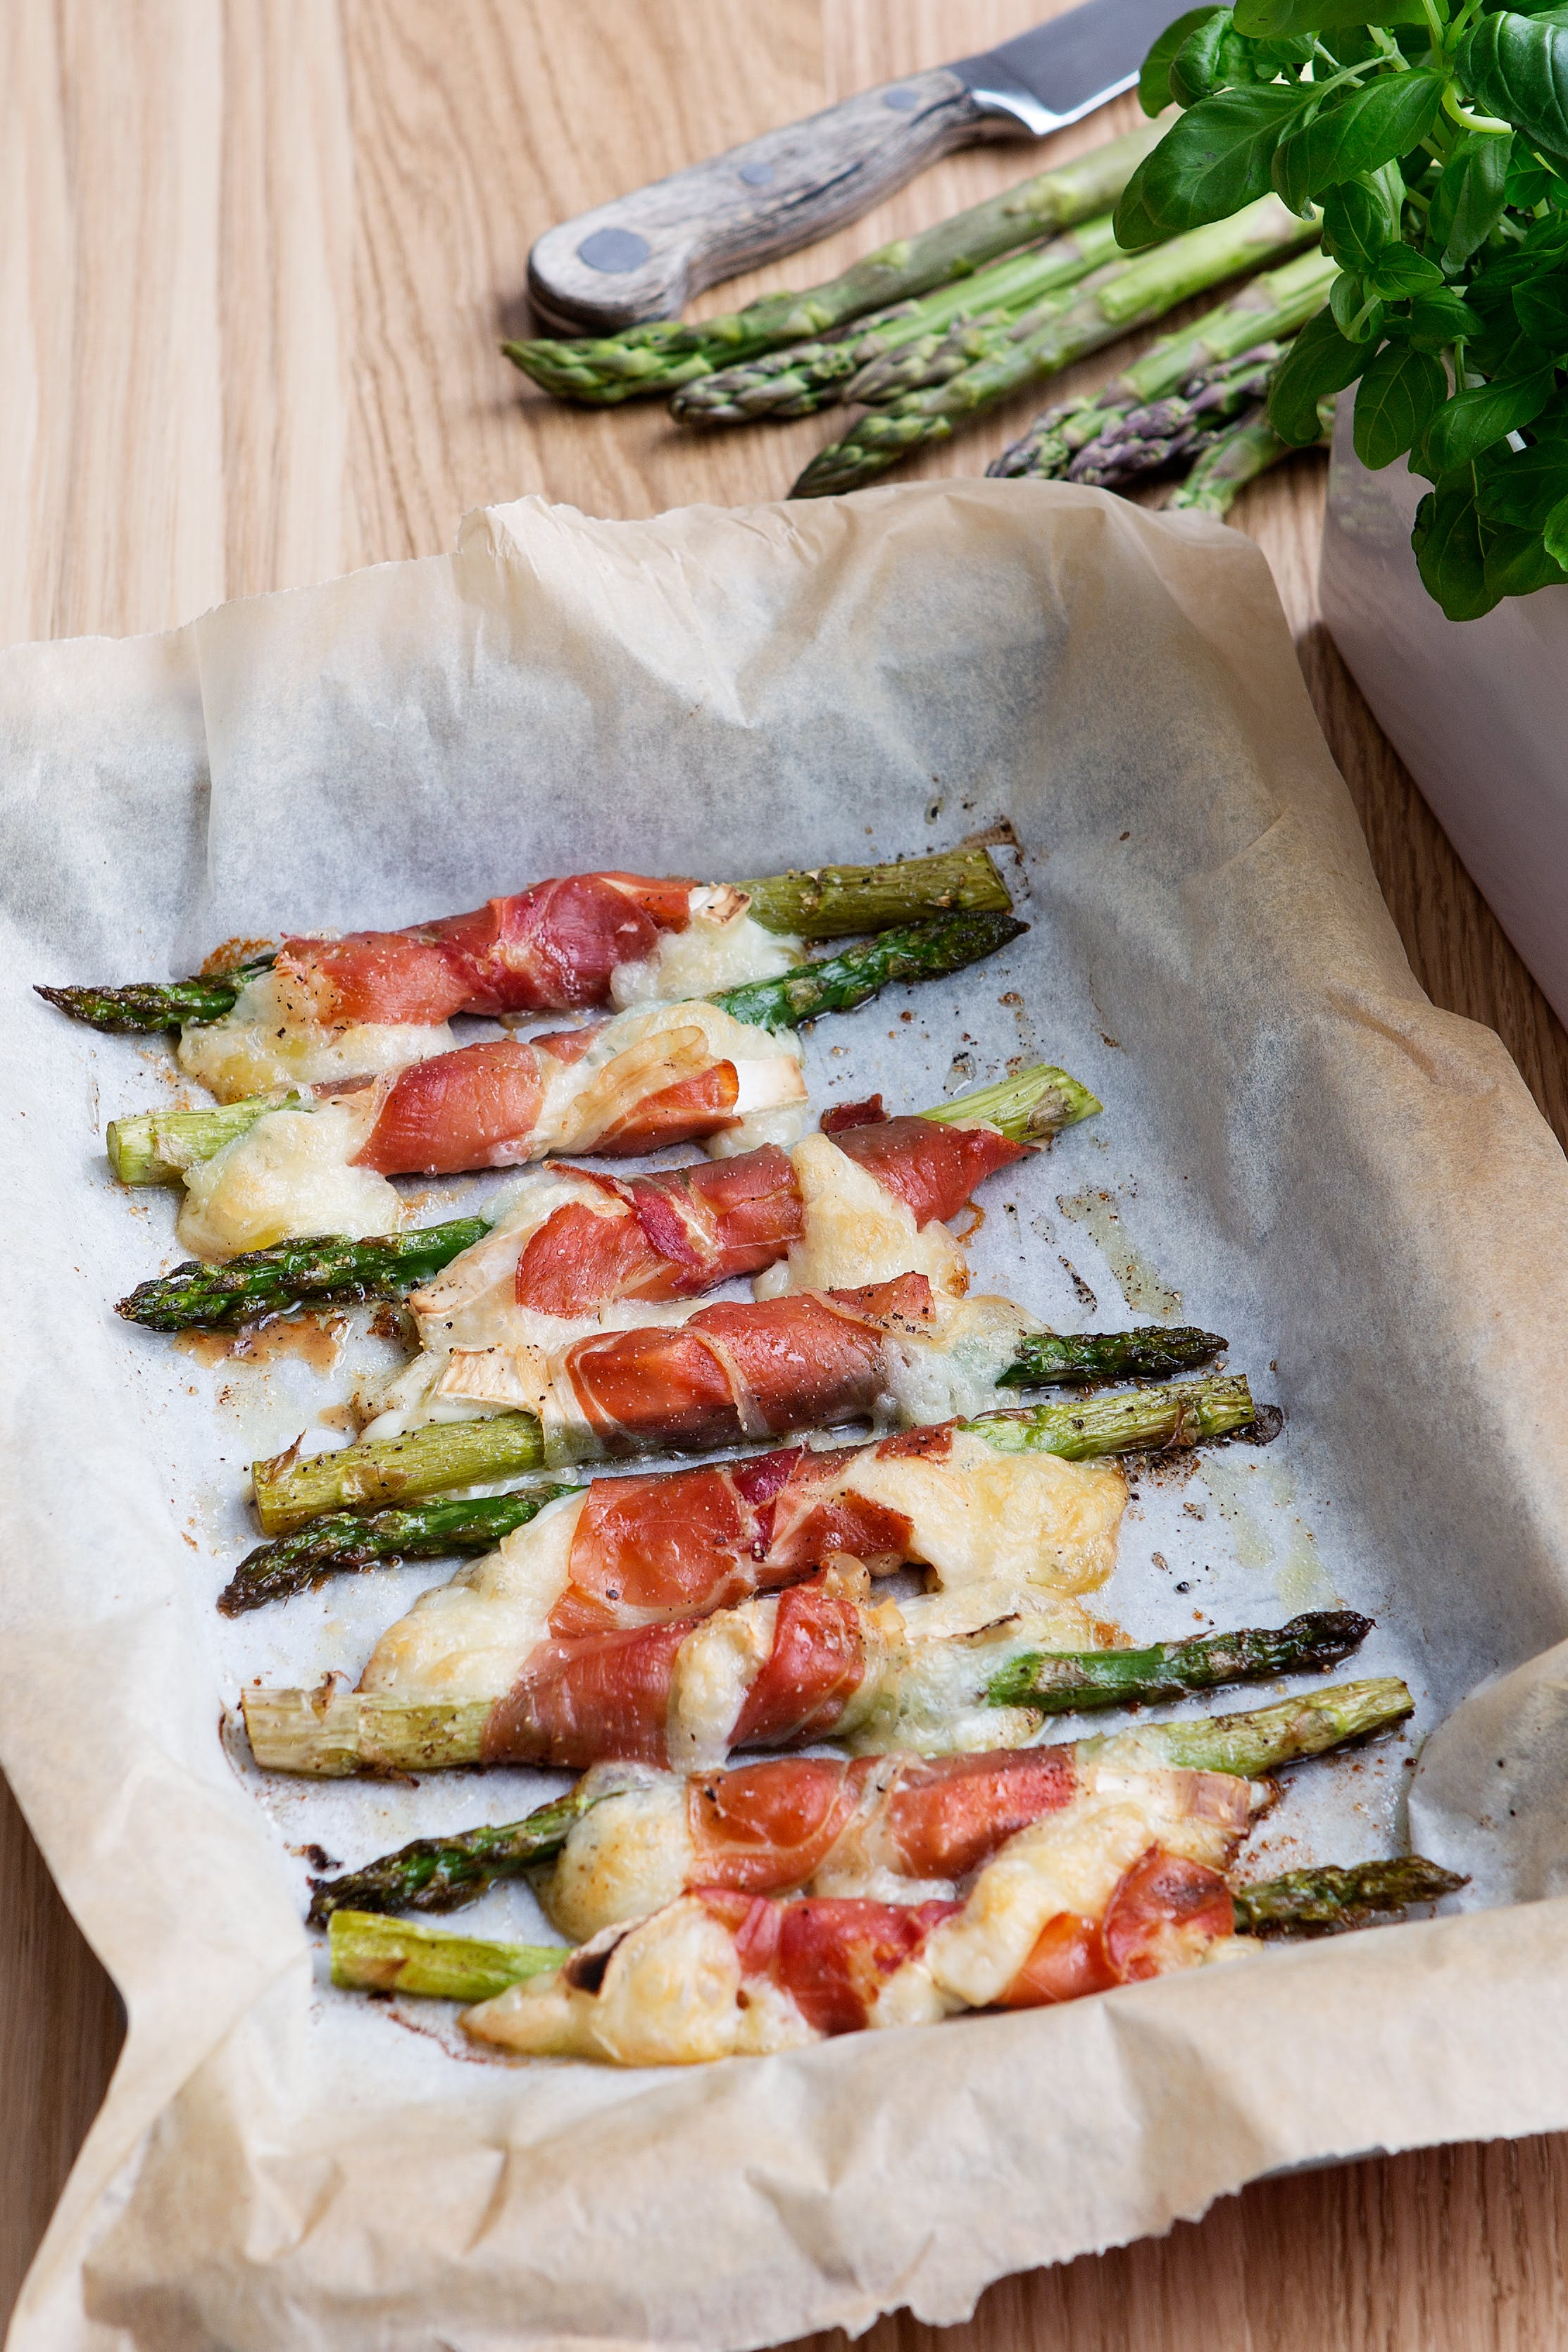 Keto prosciutto-wrapped asparagus with goat cheese